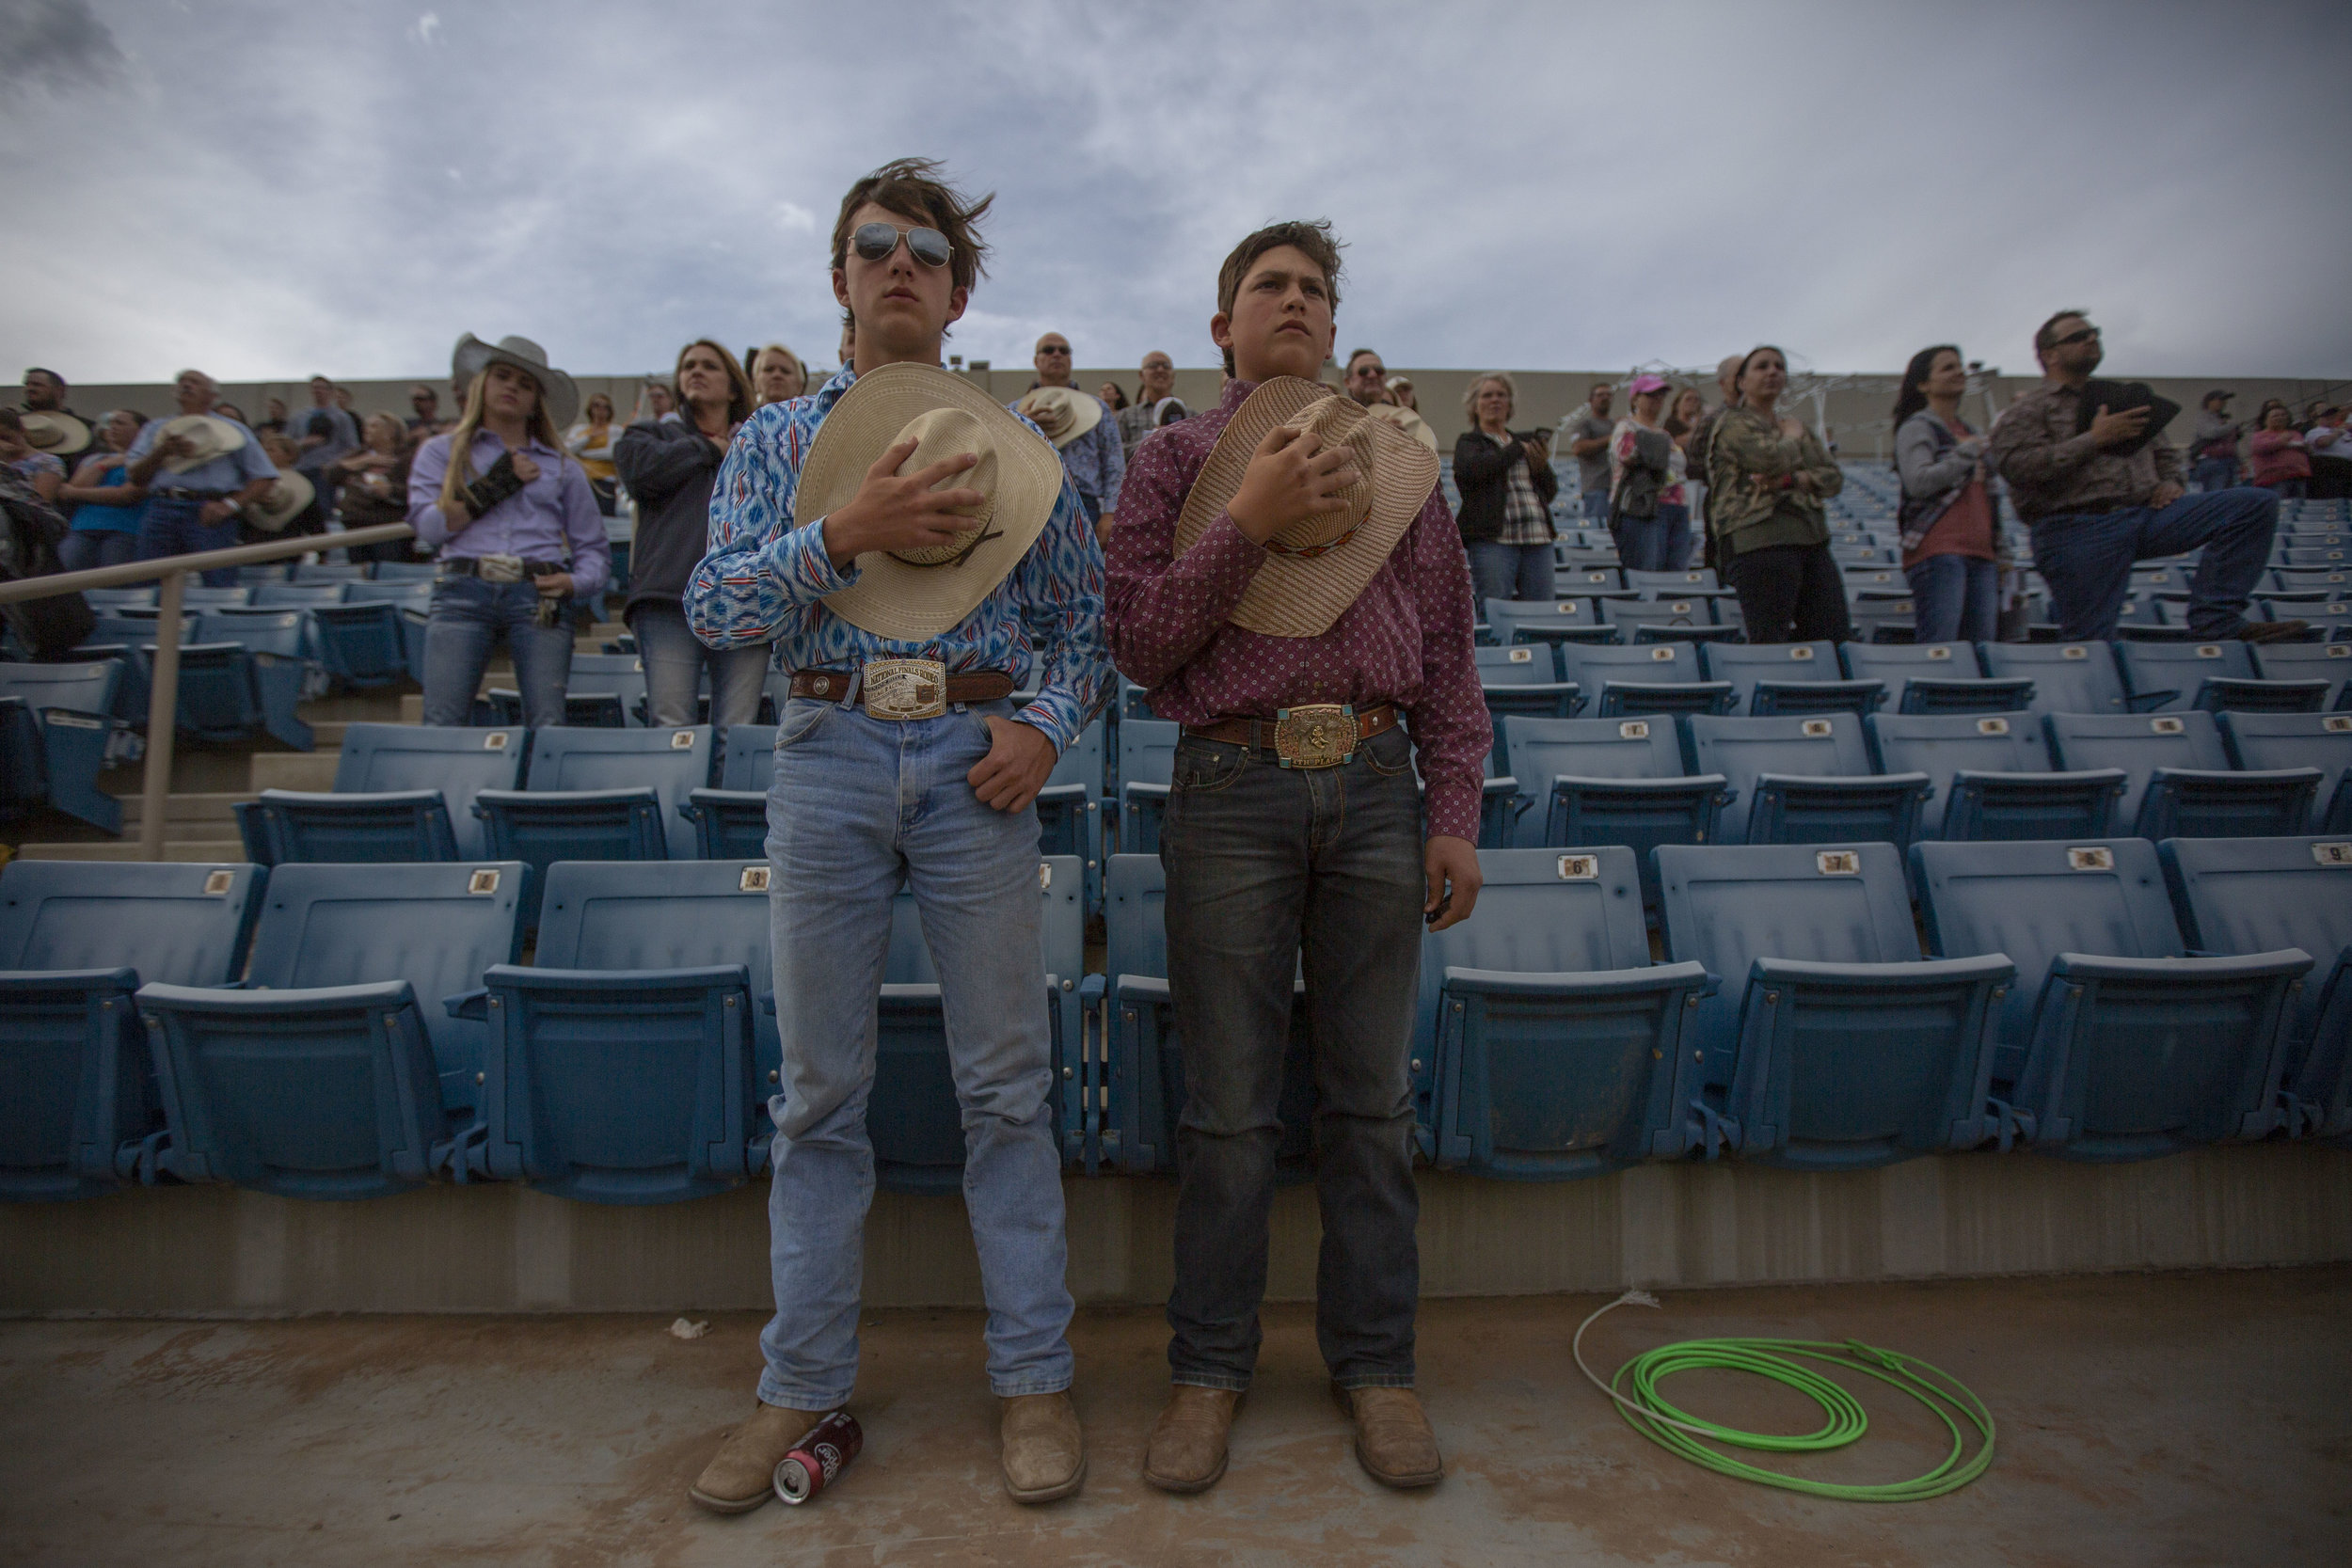 Teenage men hold their cowboy hats over their hearts as they listen to the national anthem at the Utah High School Rodeo Association Finals in Heber City Utah, June 7, 2019.